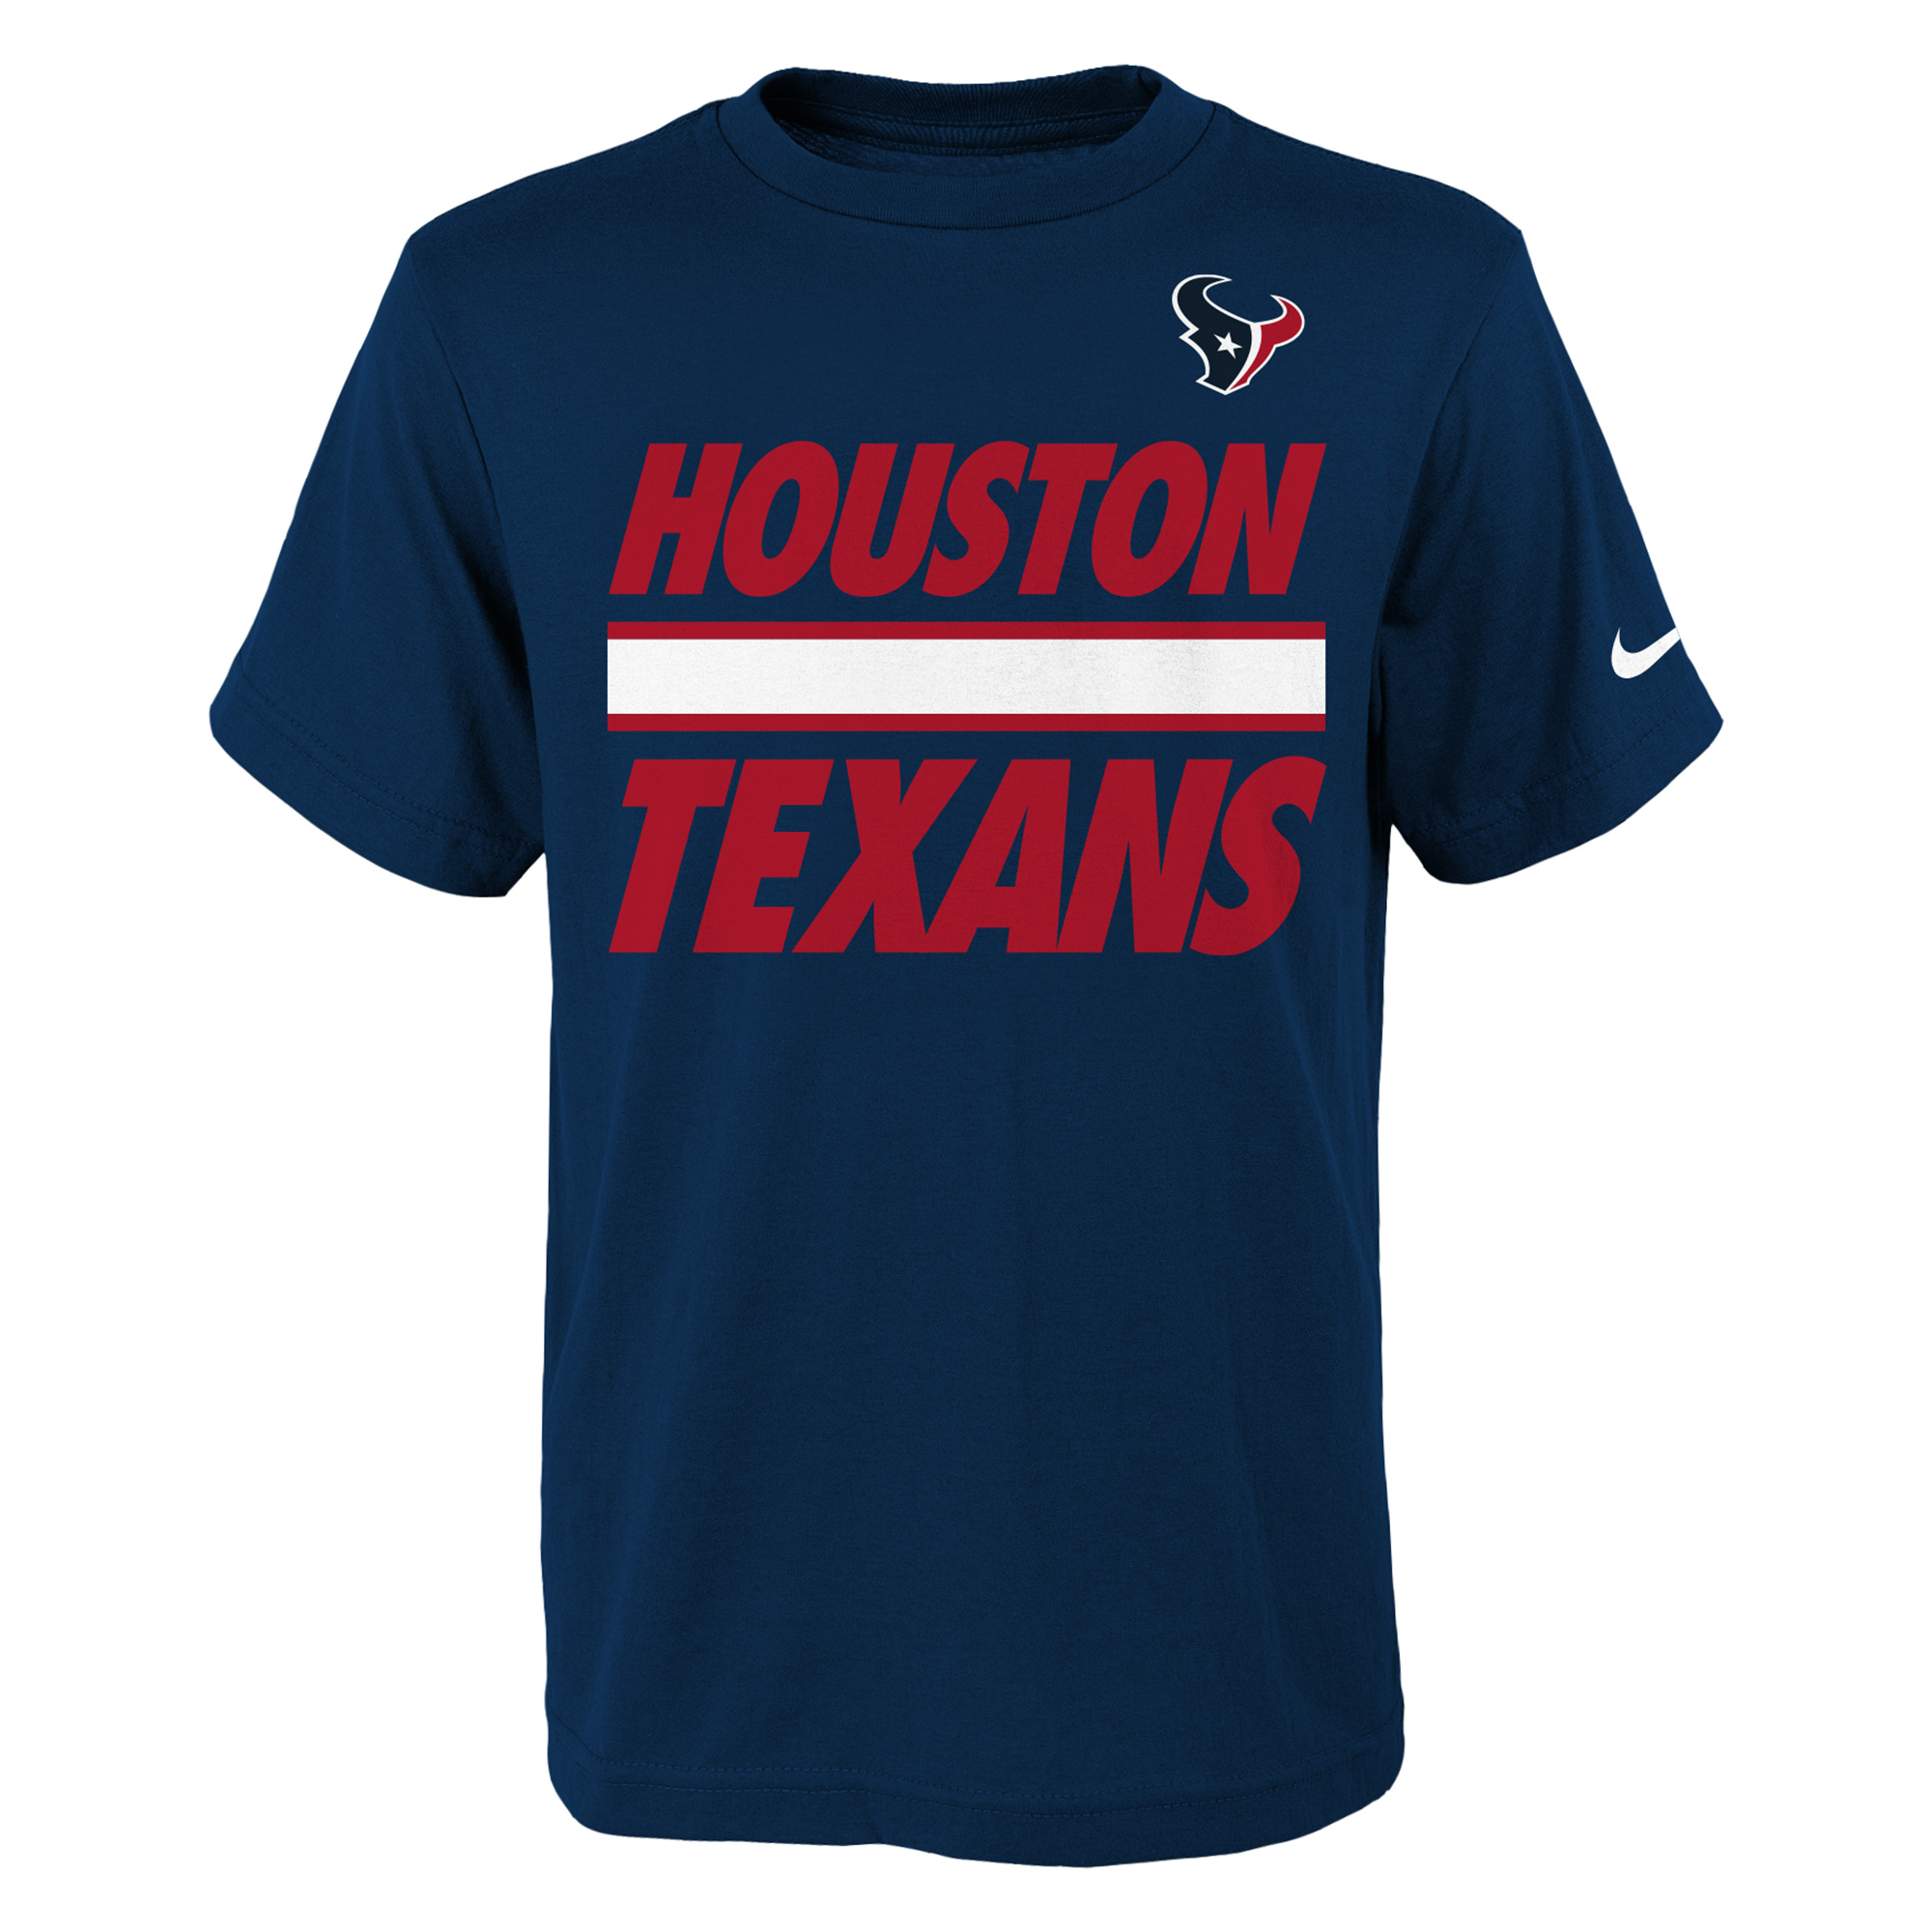 Houston Texans Nike Youth Team Stripe T-Shirt - Navy